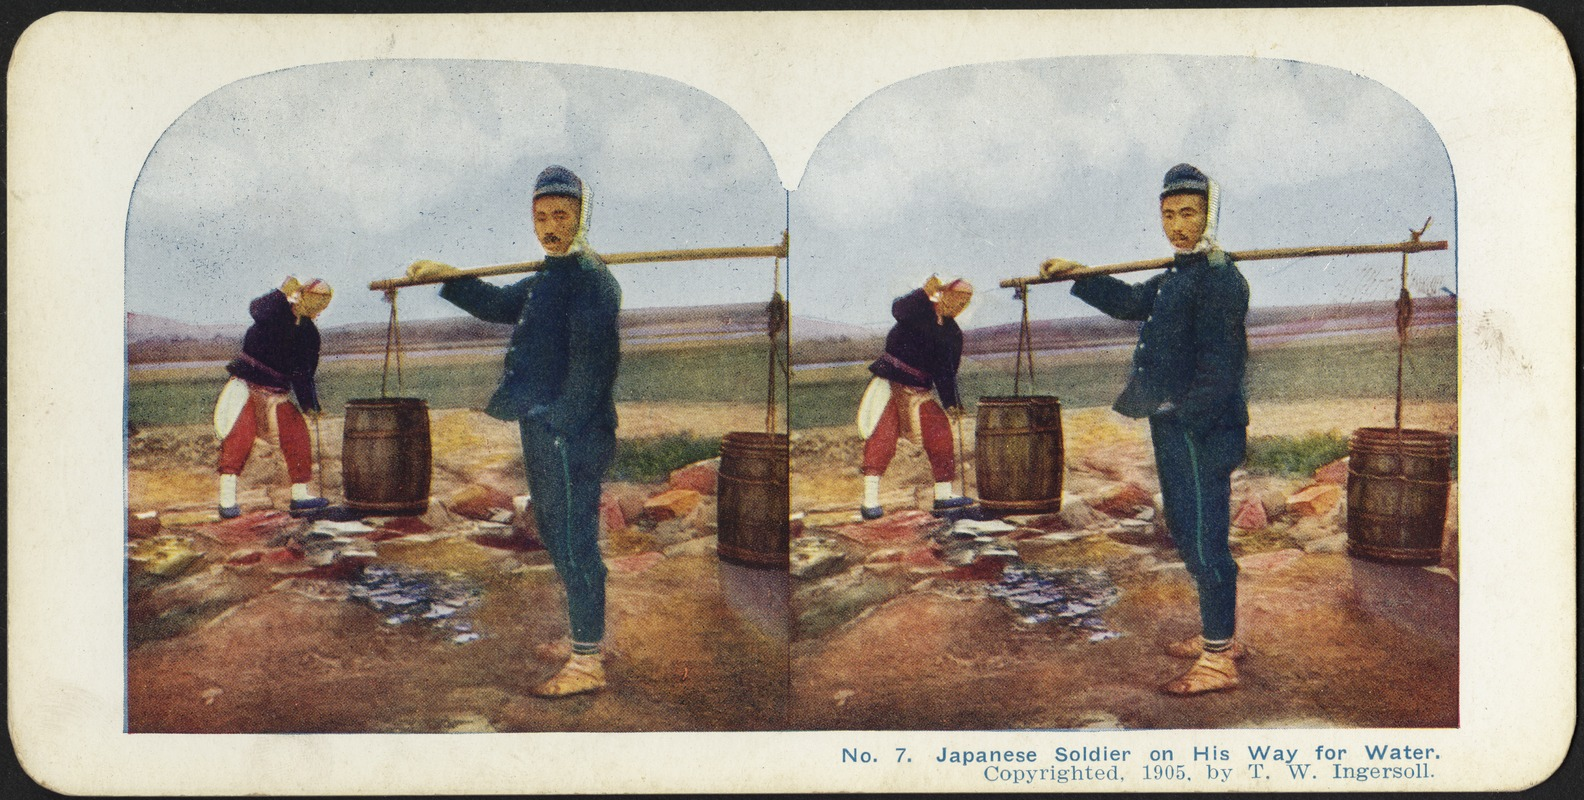 A Japanese soldier on his way to the well for water